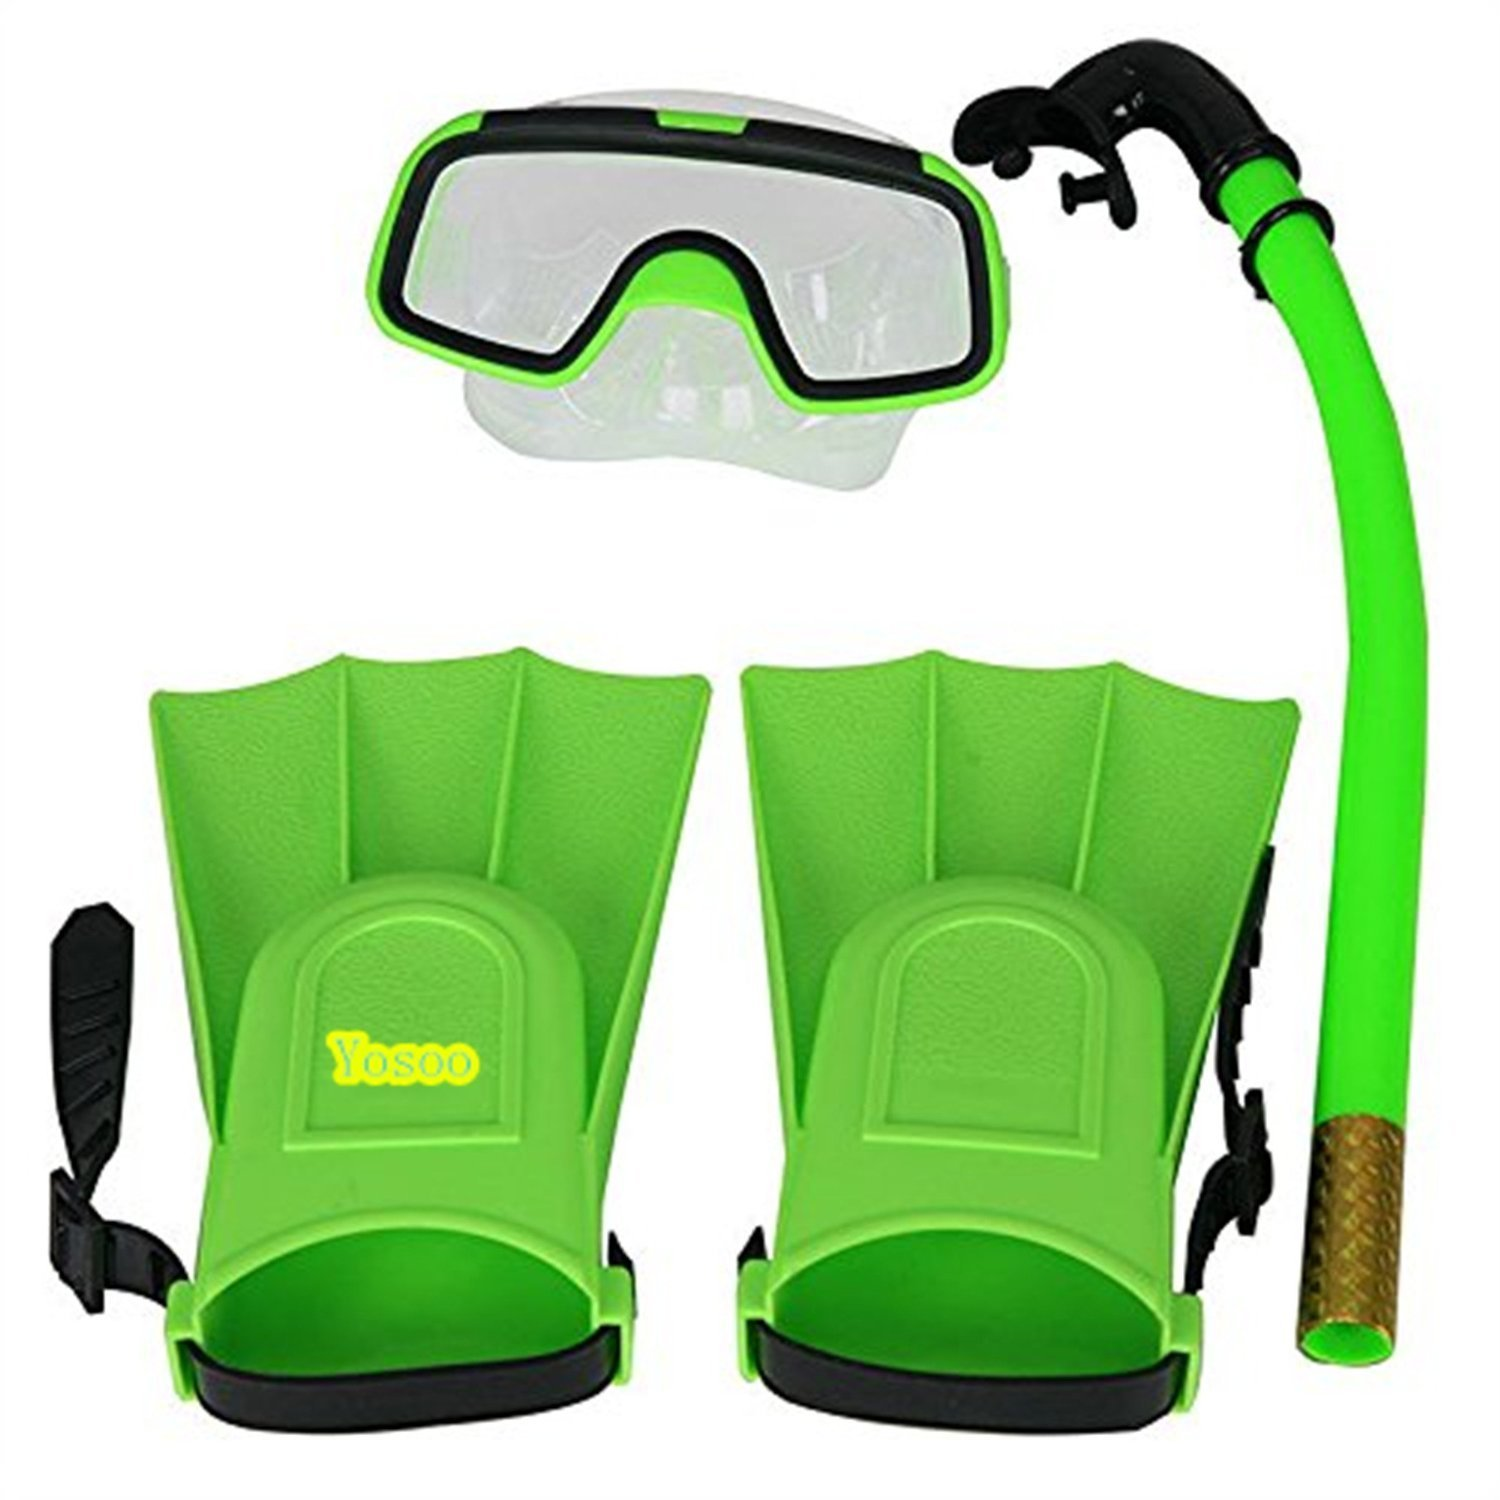 Children Kids Swimming Diving Silicone Fins +Snorkel Scuba Eyeglasses + Mask Snorkel Silicone Set for 8-12.5 US Foot Size